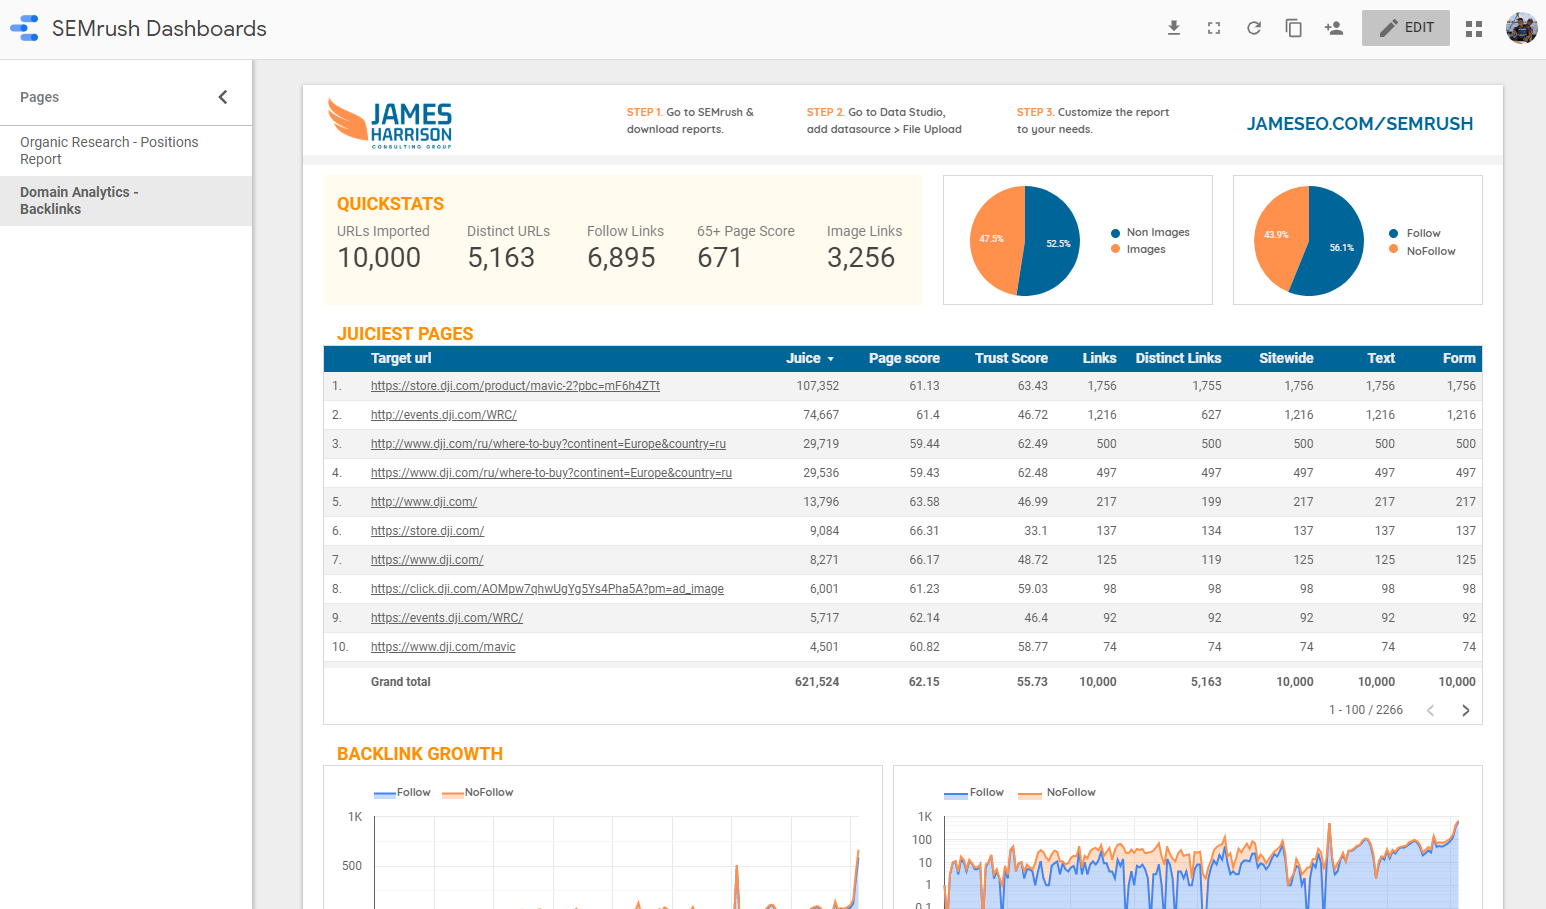 James Harrison - SEO Dashboard in Google Data Studio with SEMrush Data